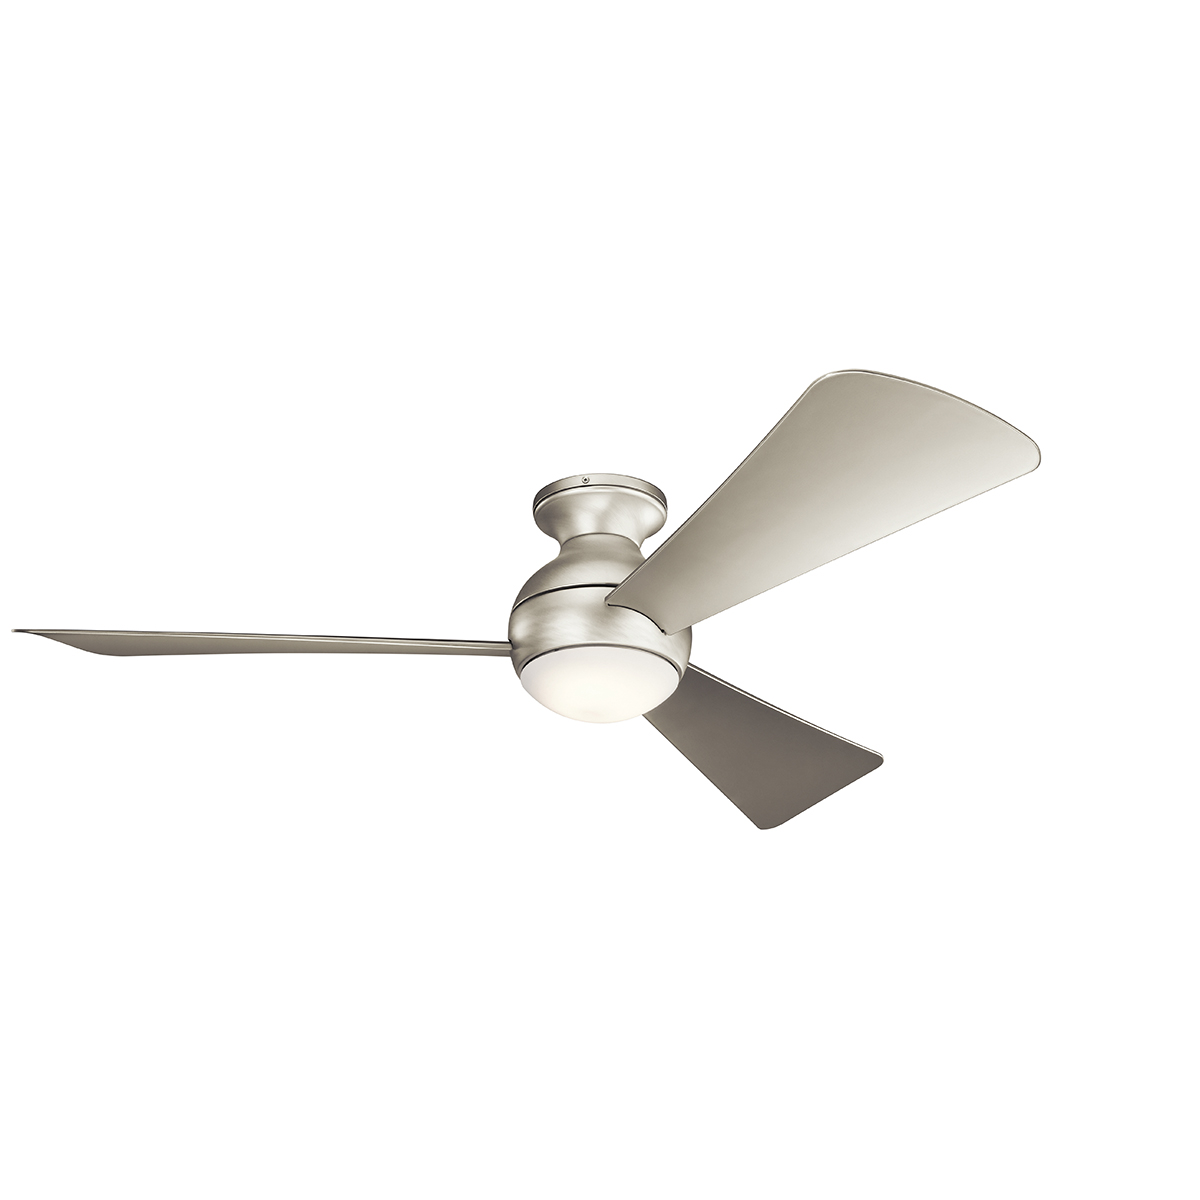 54 inchCeiling Fan from the Sola collection by Kichler 330152NI